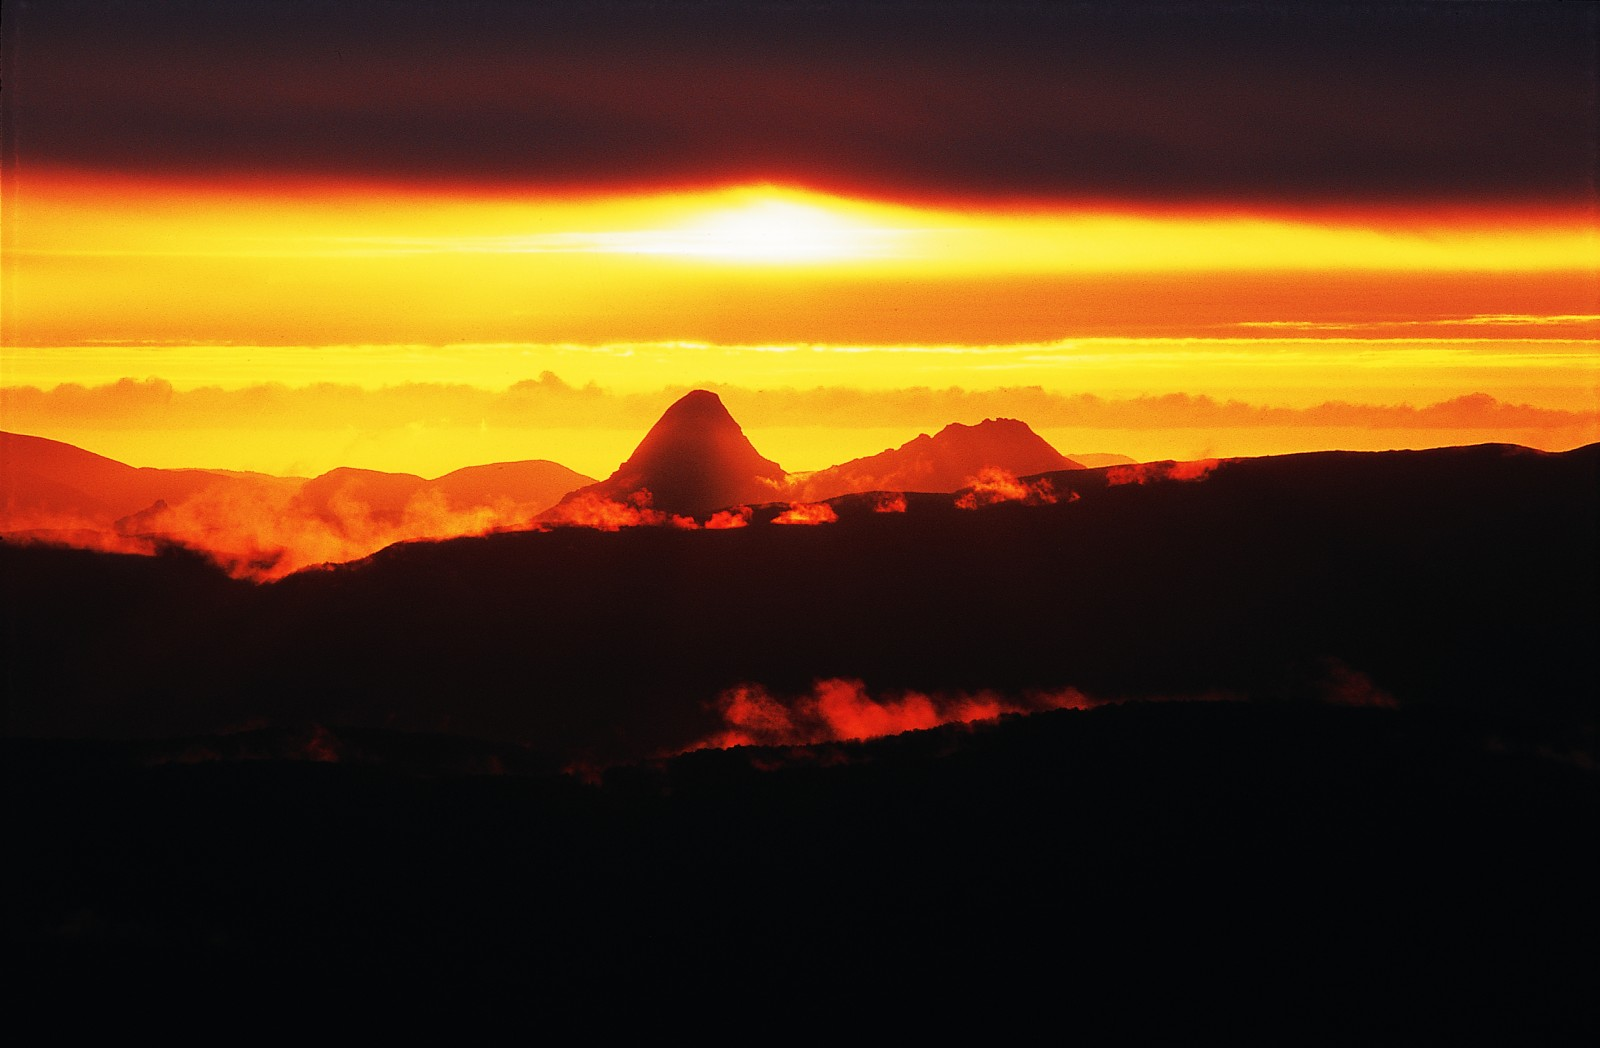 """The granity heads of Gog (at left) and Magog are silhouetted by a classic Rakiura sunset in this view to the south-west from the Tin Range. The Maori name for tis island literally means """"glowing skies."""" Golden vistas couldn't compensate for empty pockets, however, and the great tin rush of 1889 turned out to be a little more than a flash in the pan."""